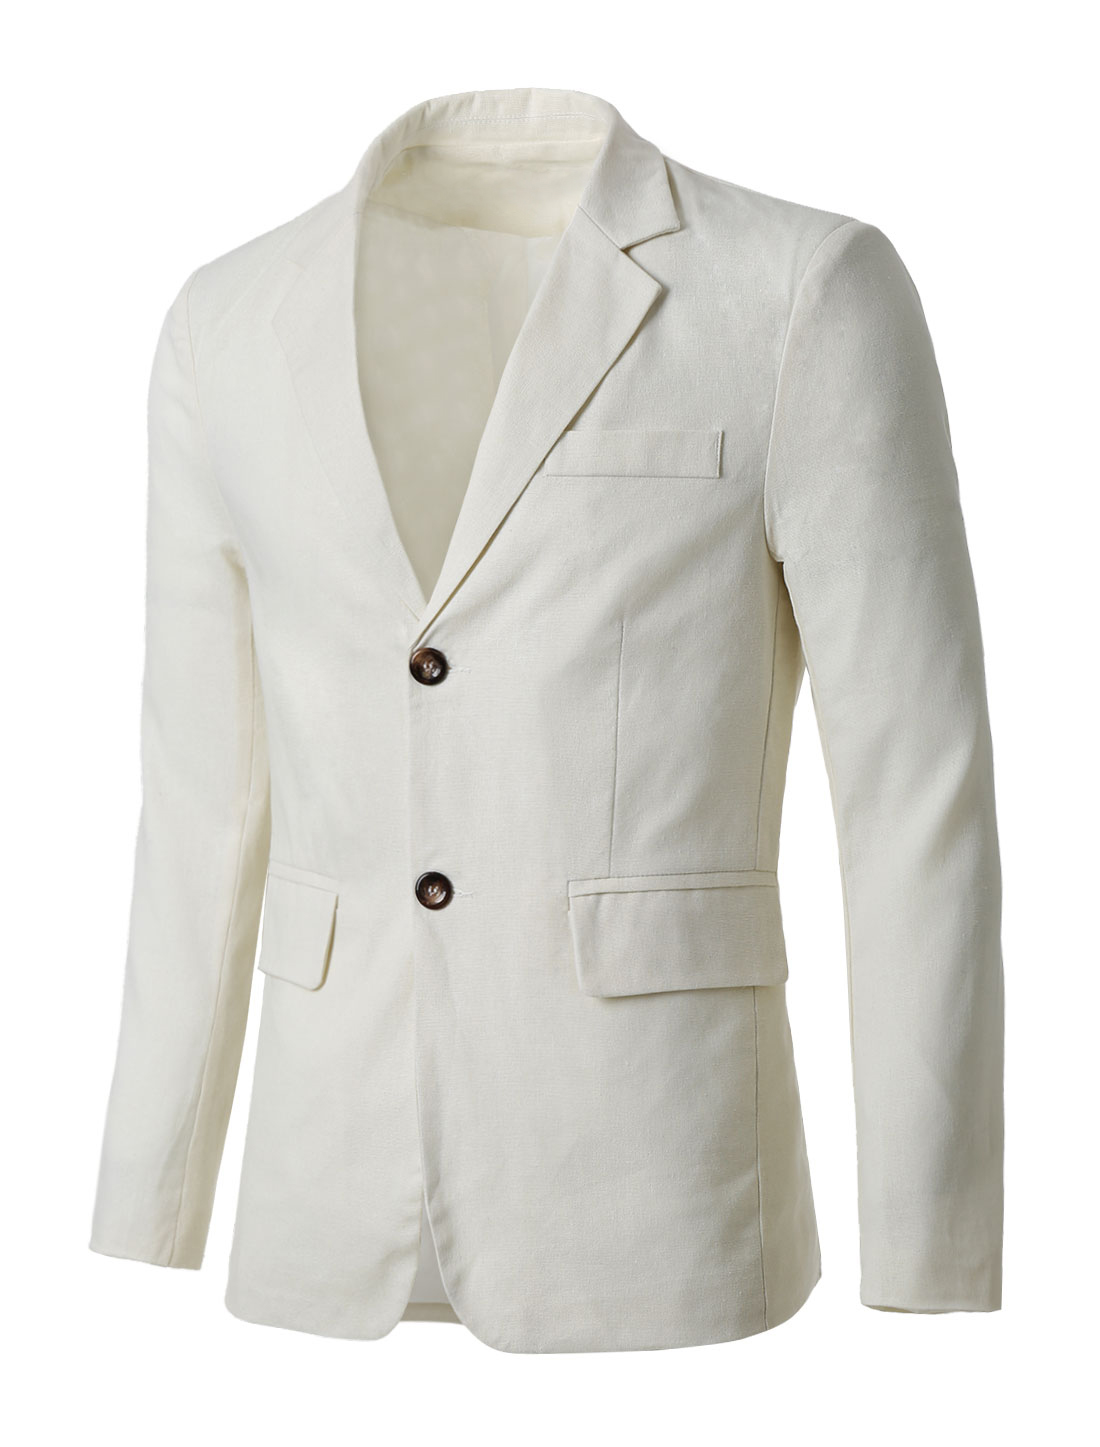 Man Notched Lapel Padded Shoulders Regular Fit Long Sleeves Blazer Off White S